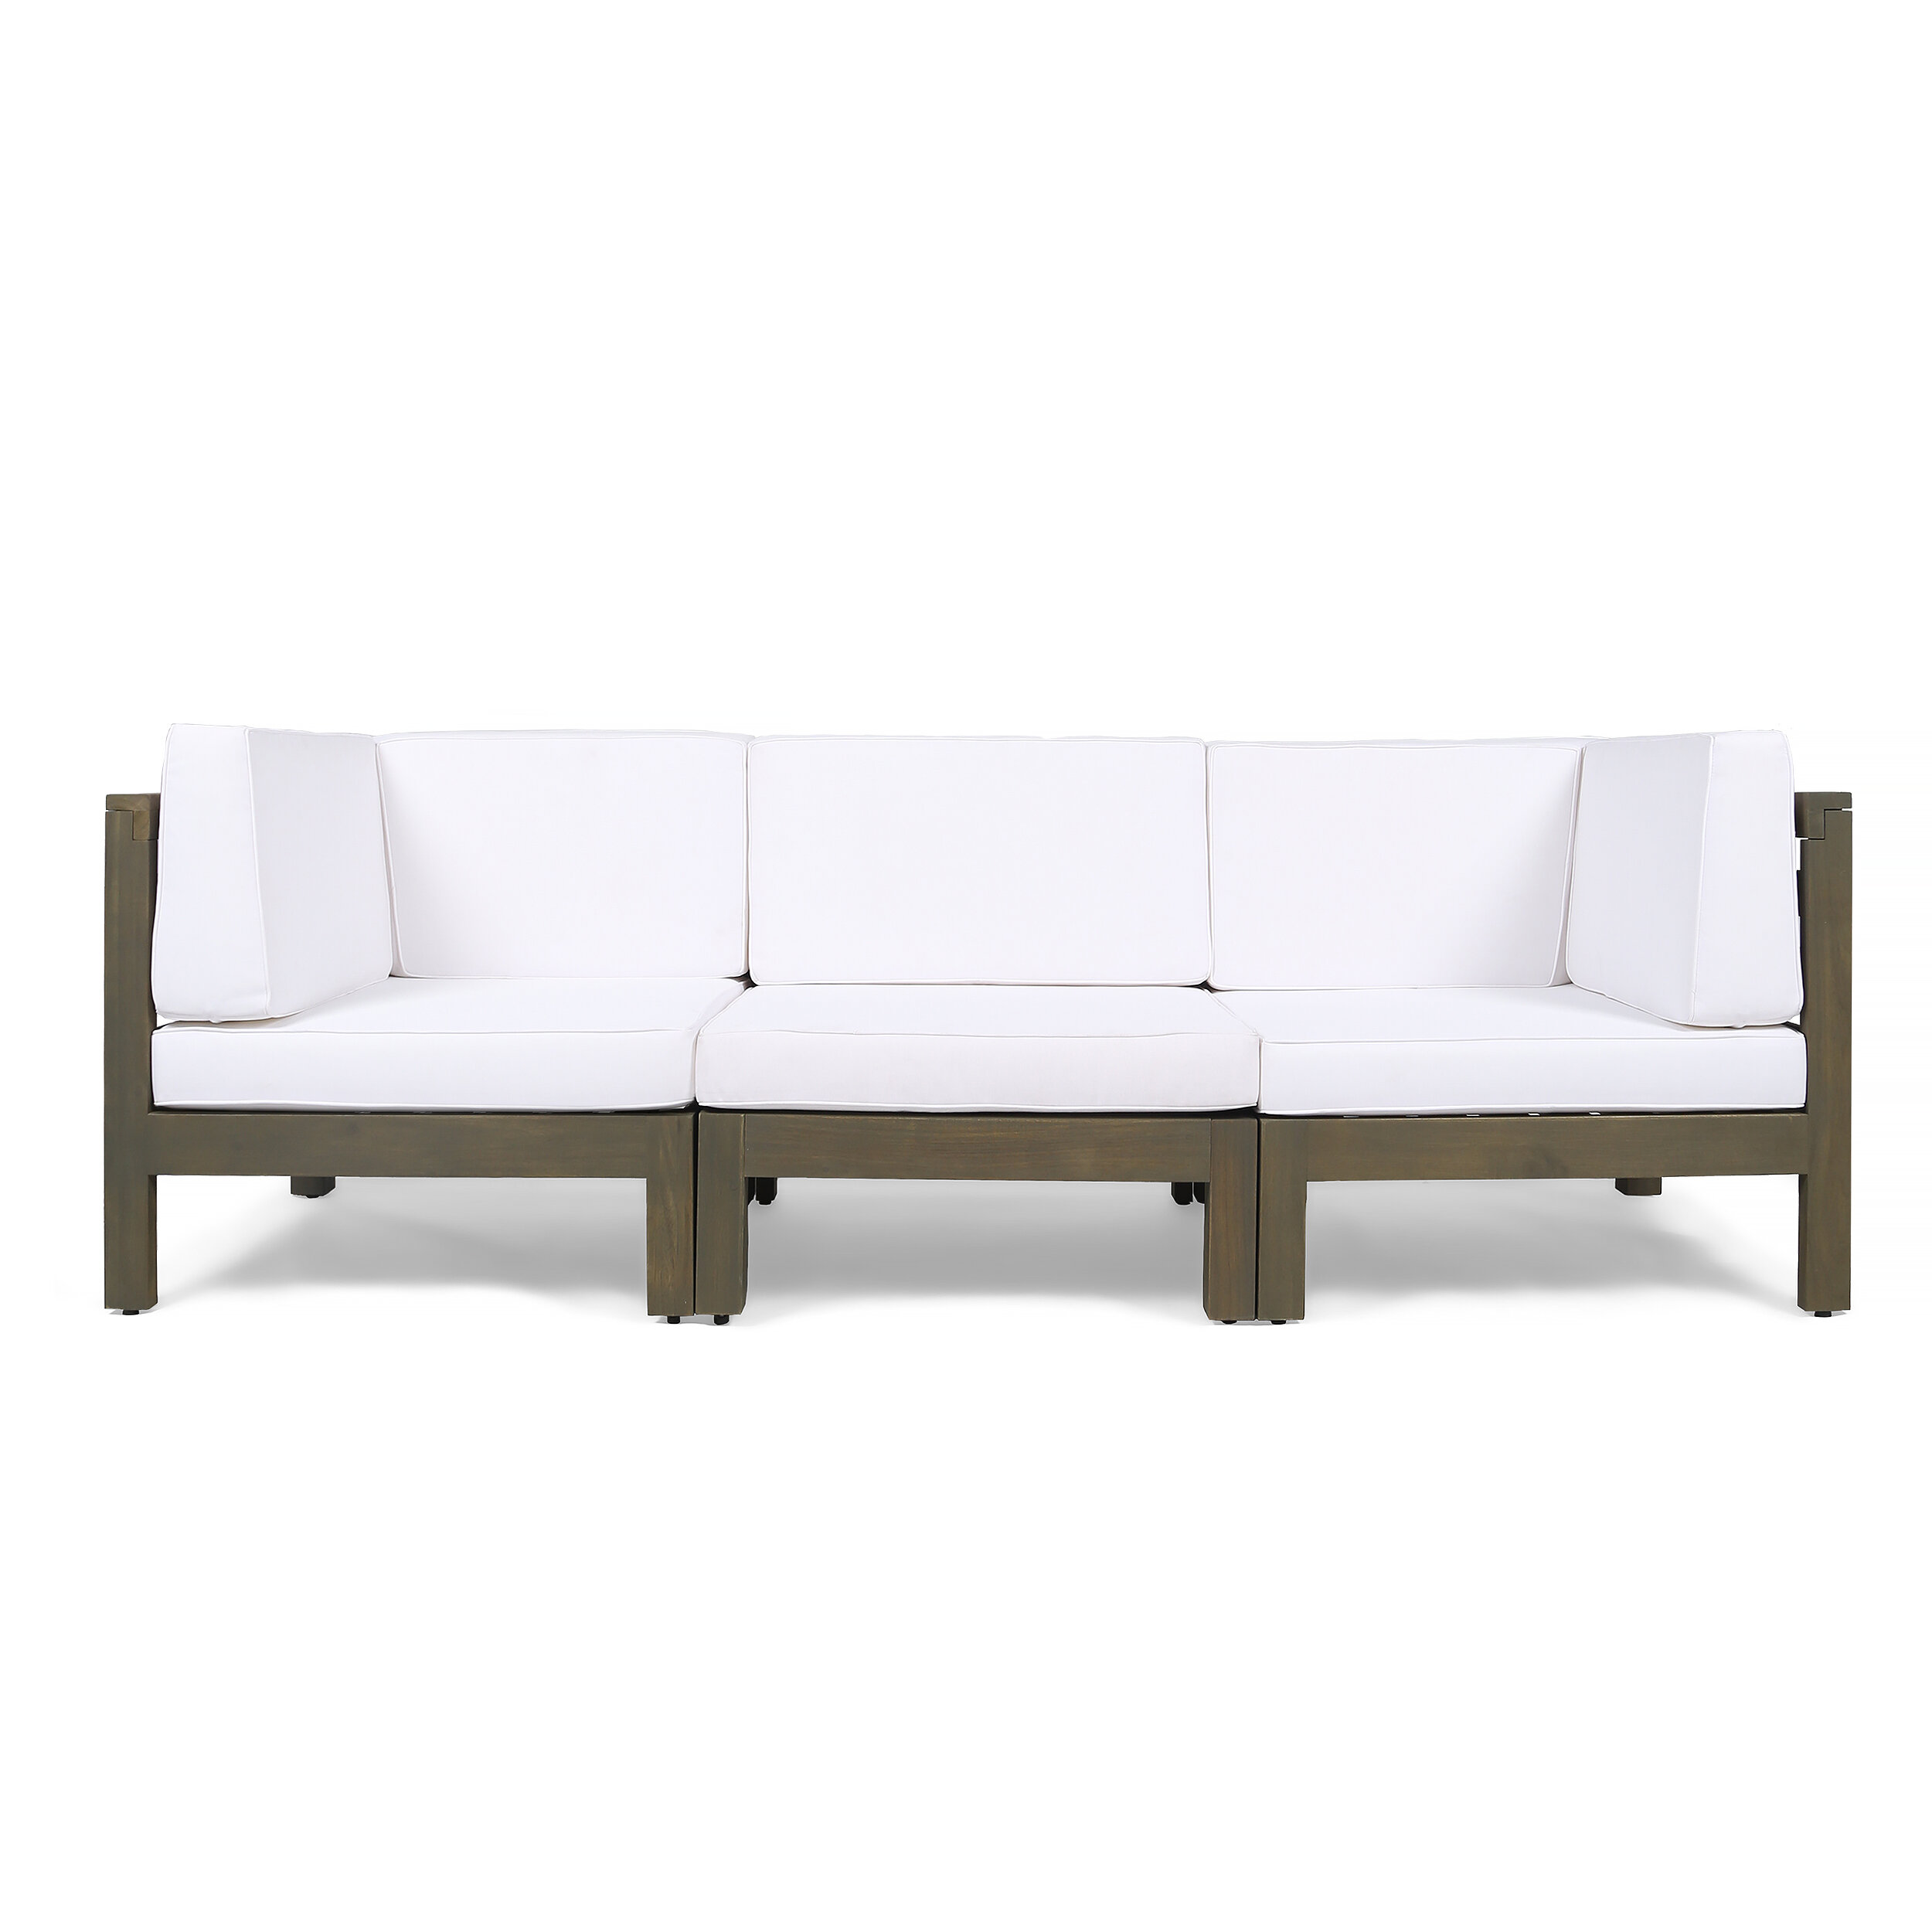 Seaham Teak Patio Sofa with Cushions